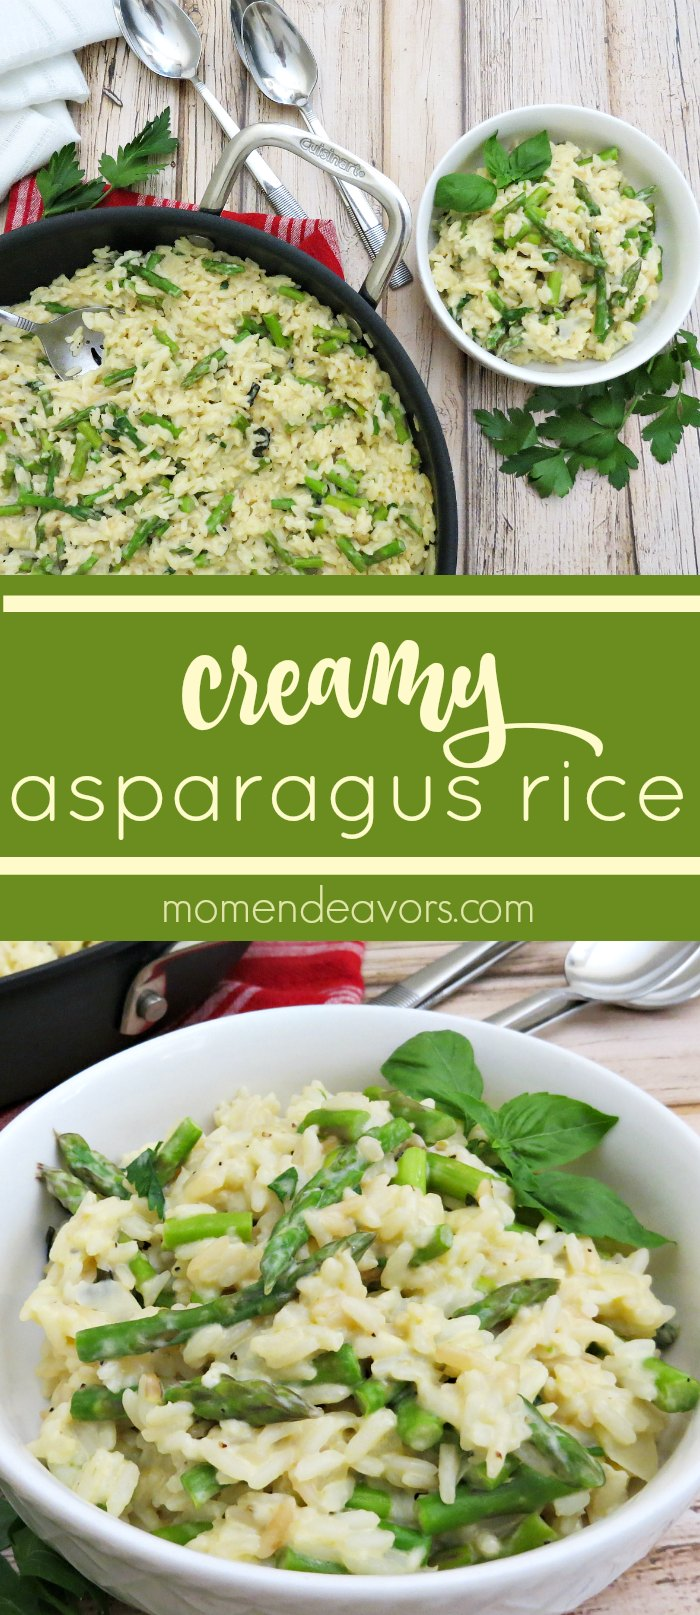 Creamy Asparagus Rice recipe